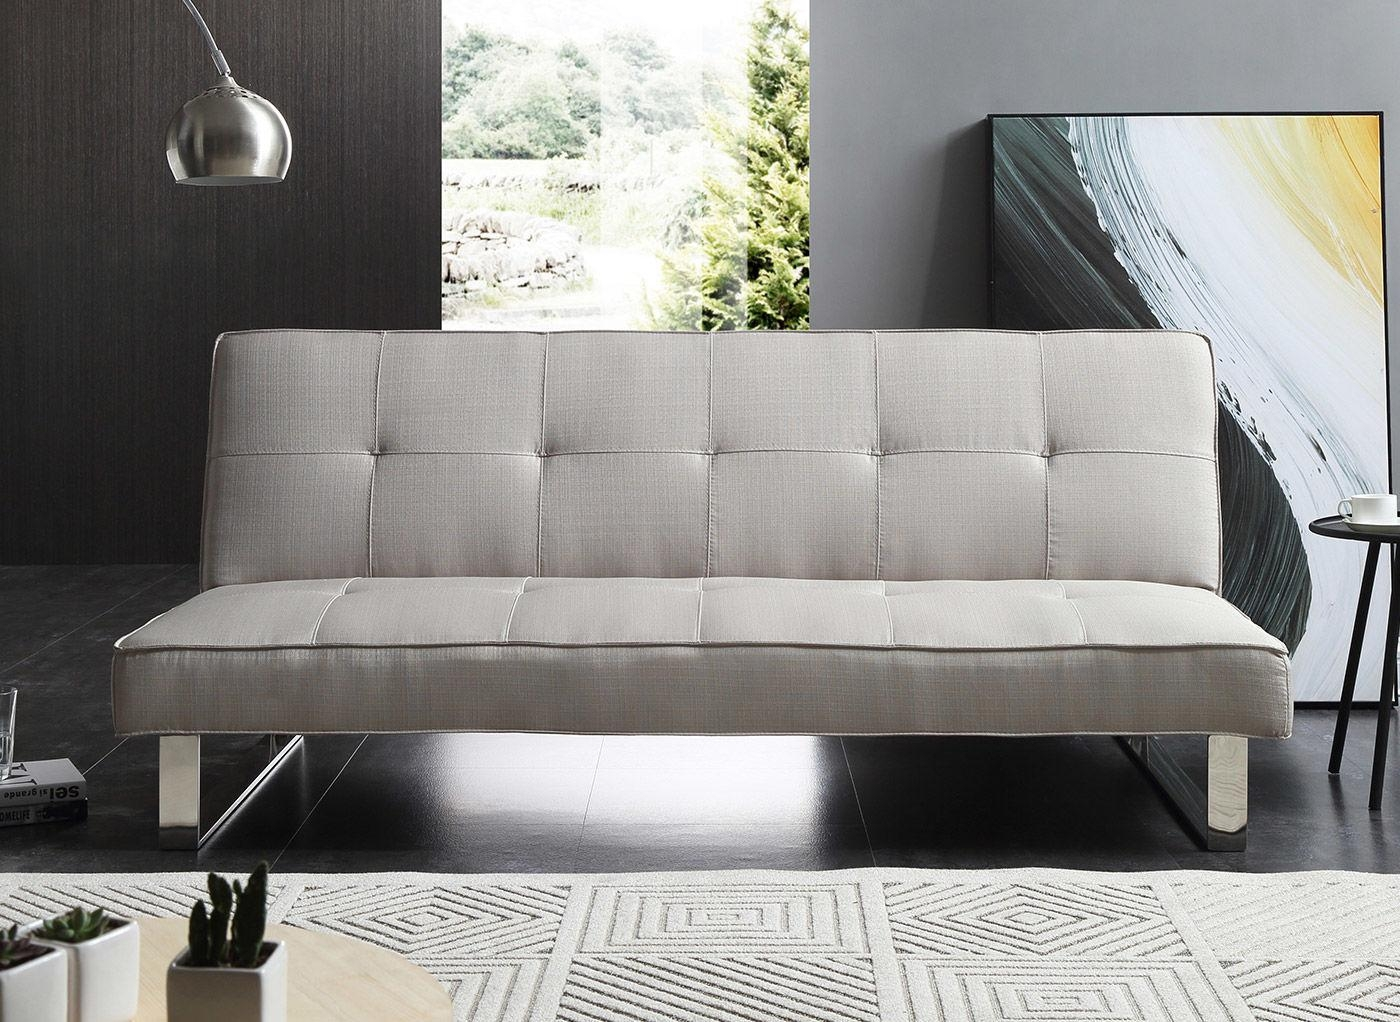 Sofa Beds For Sale From Just £319! See Our Selection Now | Dreams Throughout Sofa Beds (Image 18 of 20)